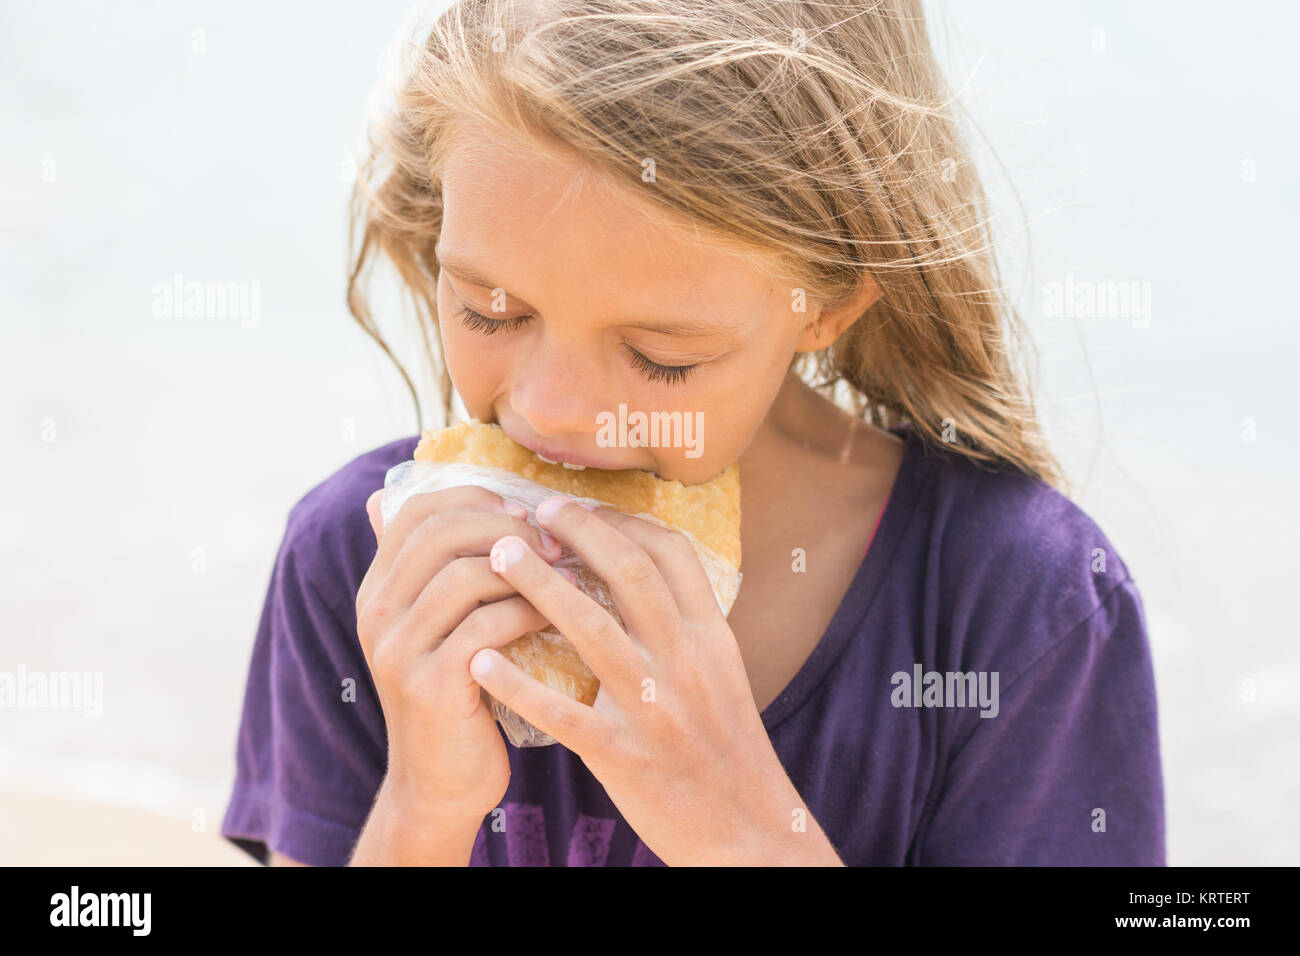 A hungry girl with an appetite for eating pie Stock Photo